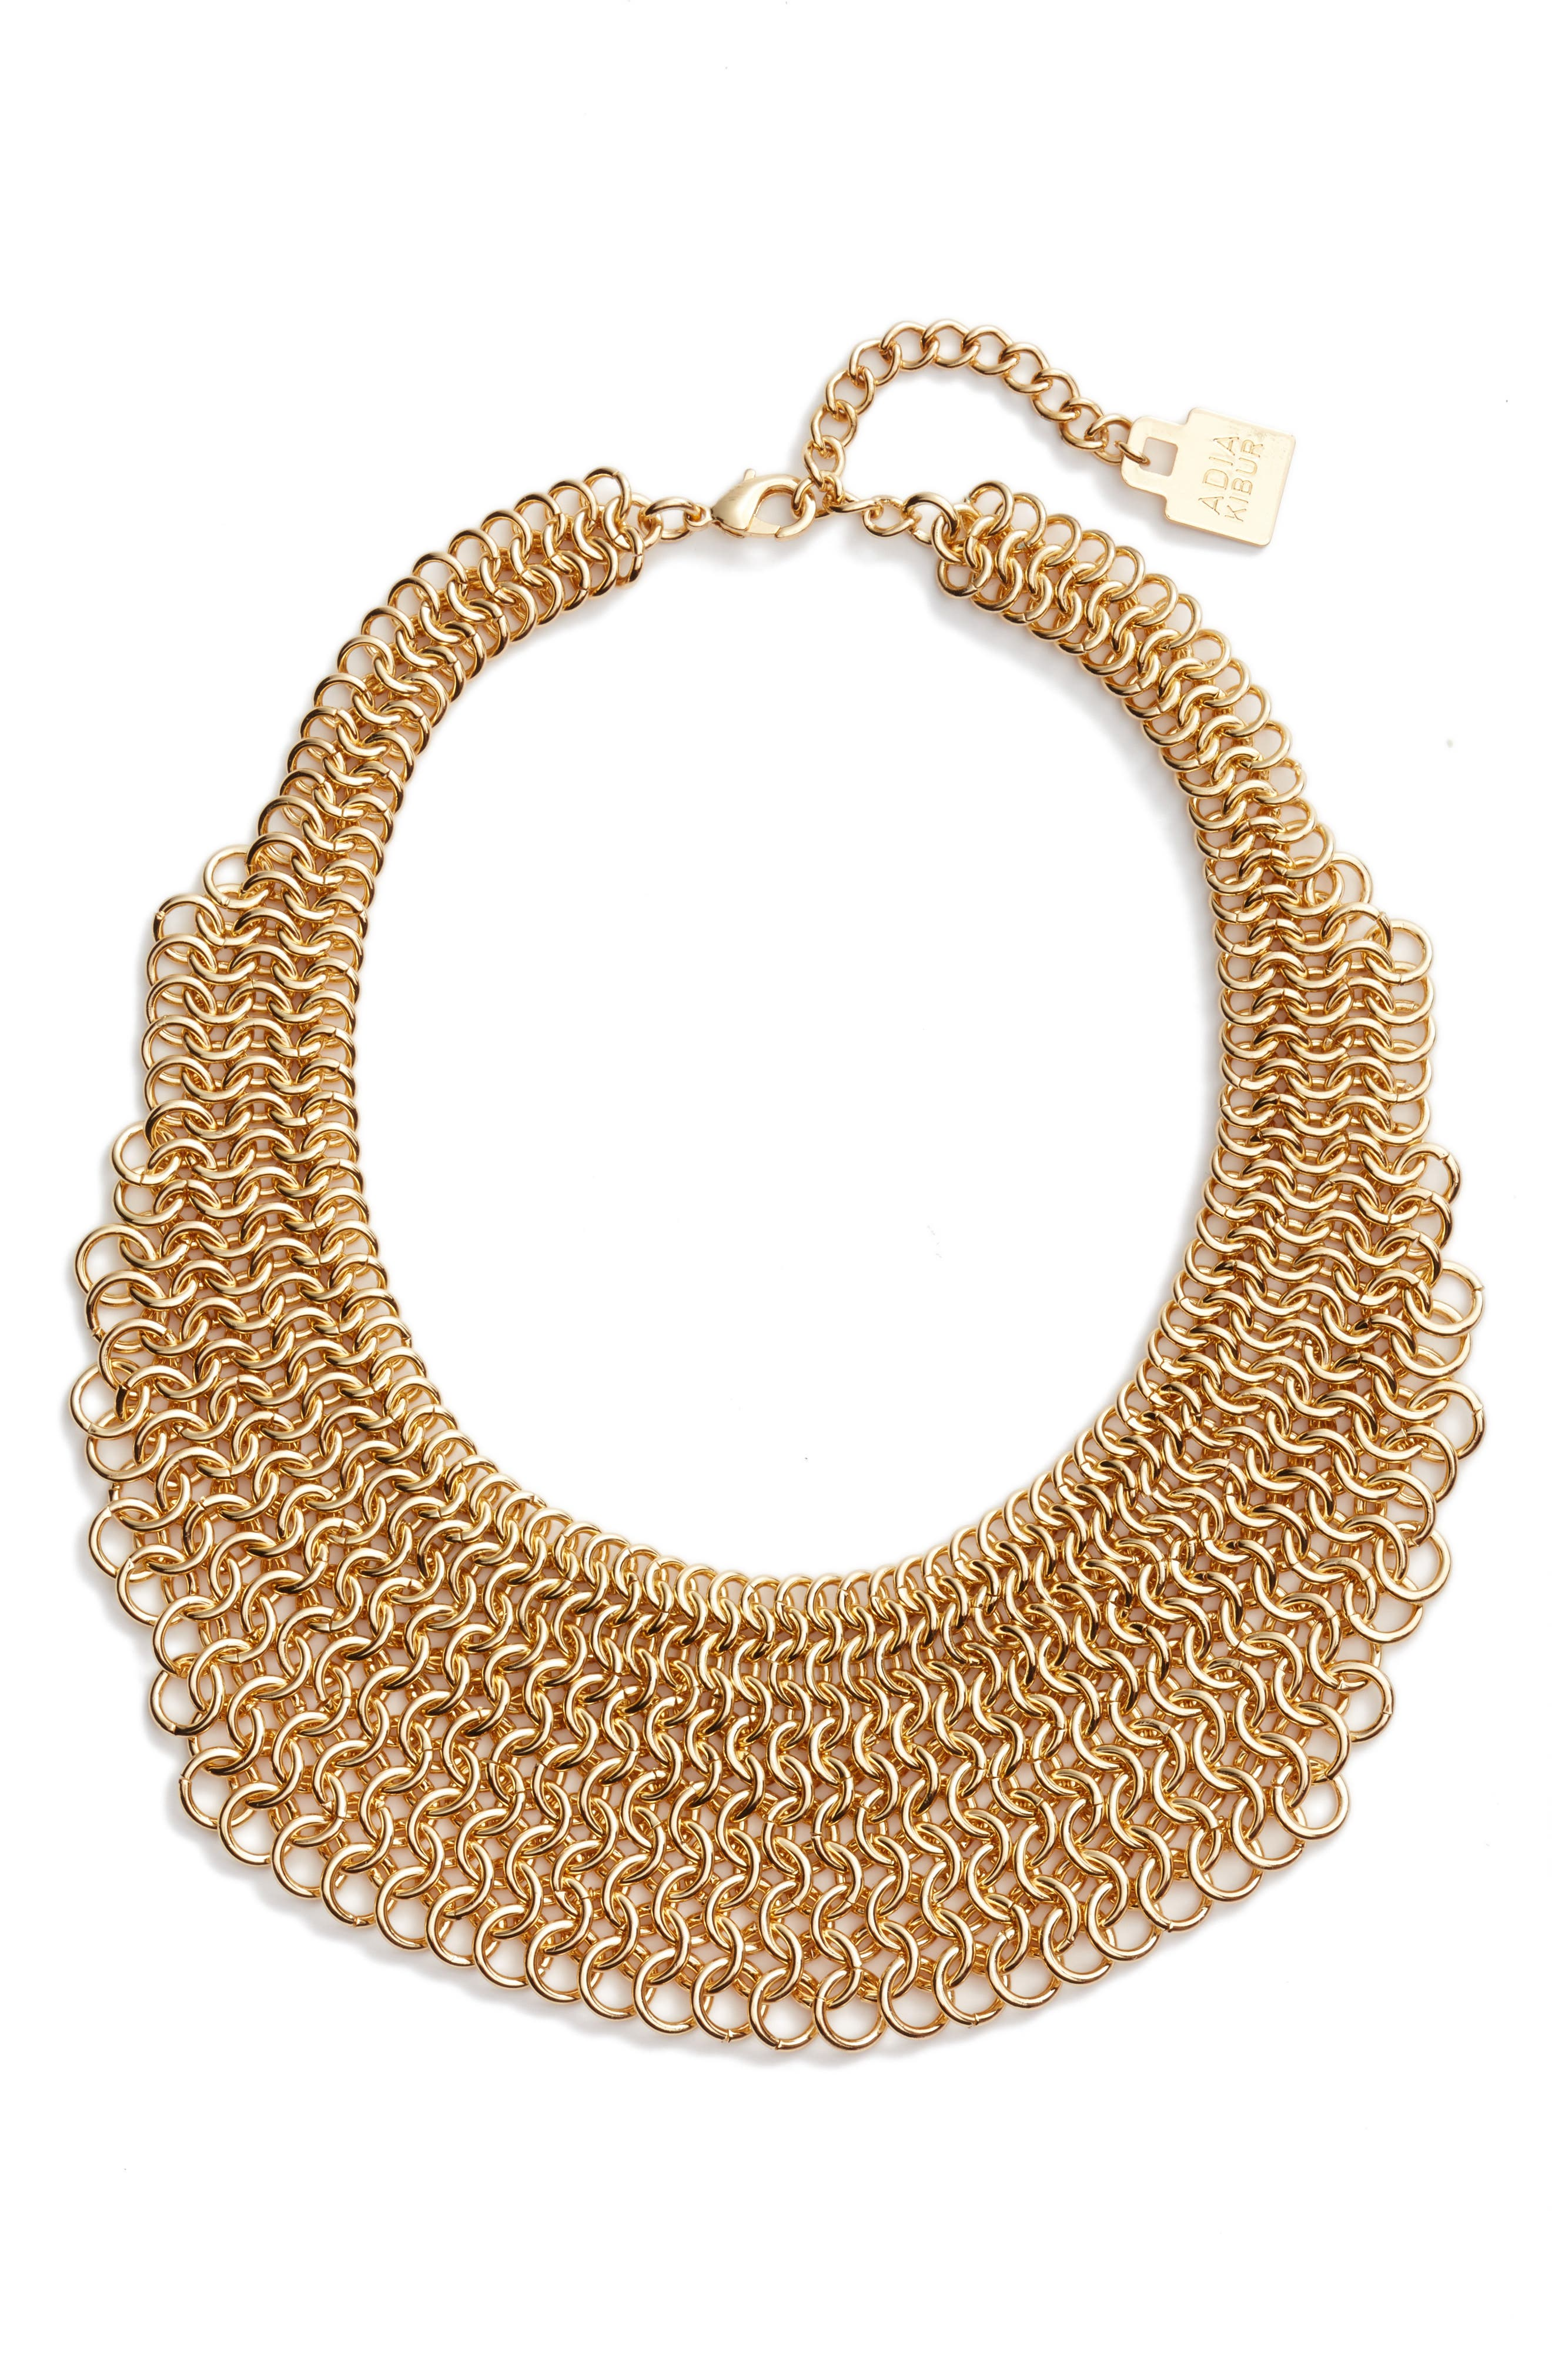 Alternate Image 1 Selected - Adia Kibur Linked Circle Statement Bib Necklace